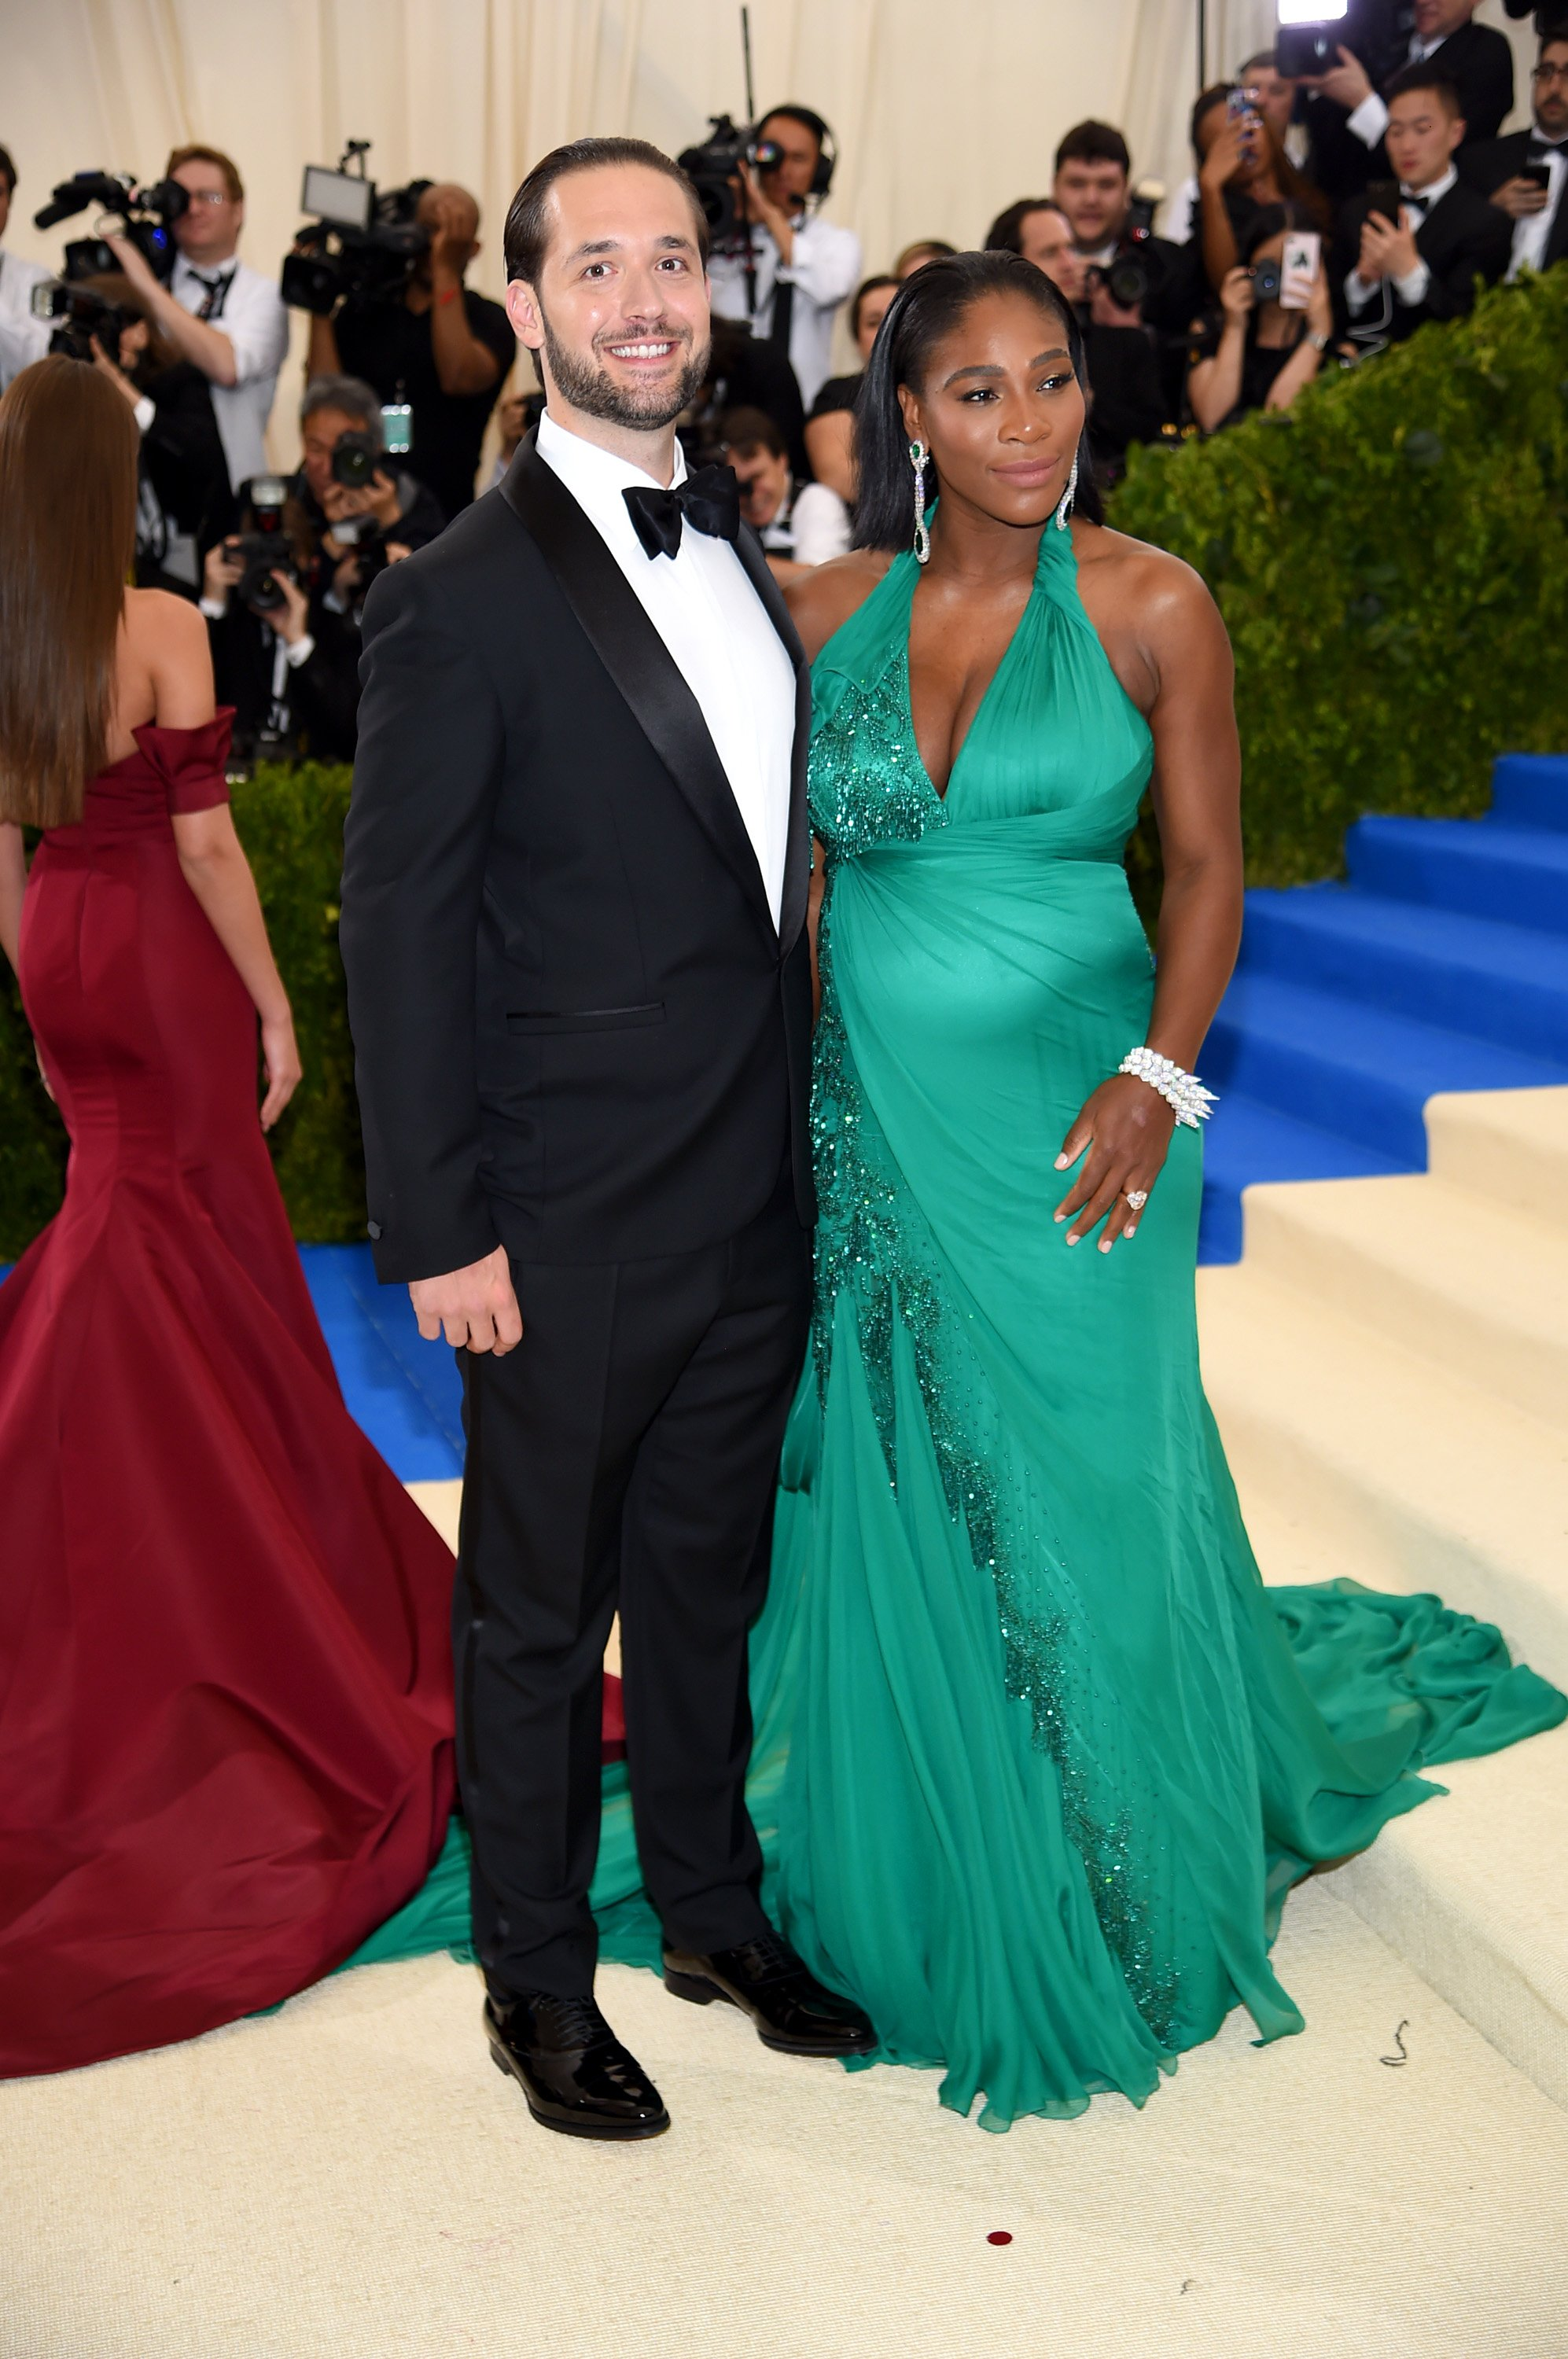 """Alexis Ohanian and Serena Williams pictured at  the """"Rei Kawakubo/Comme des Garcons: Art Of The In-Between"""" Costume Institute Gala at Metropolitan Museum of Art, 2017, New York City. 